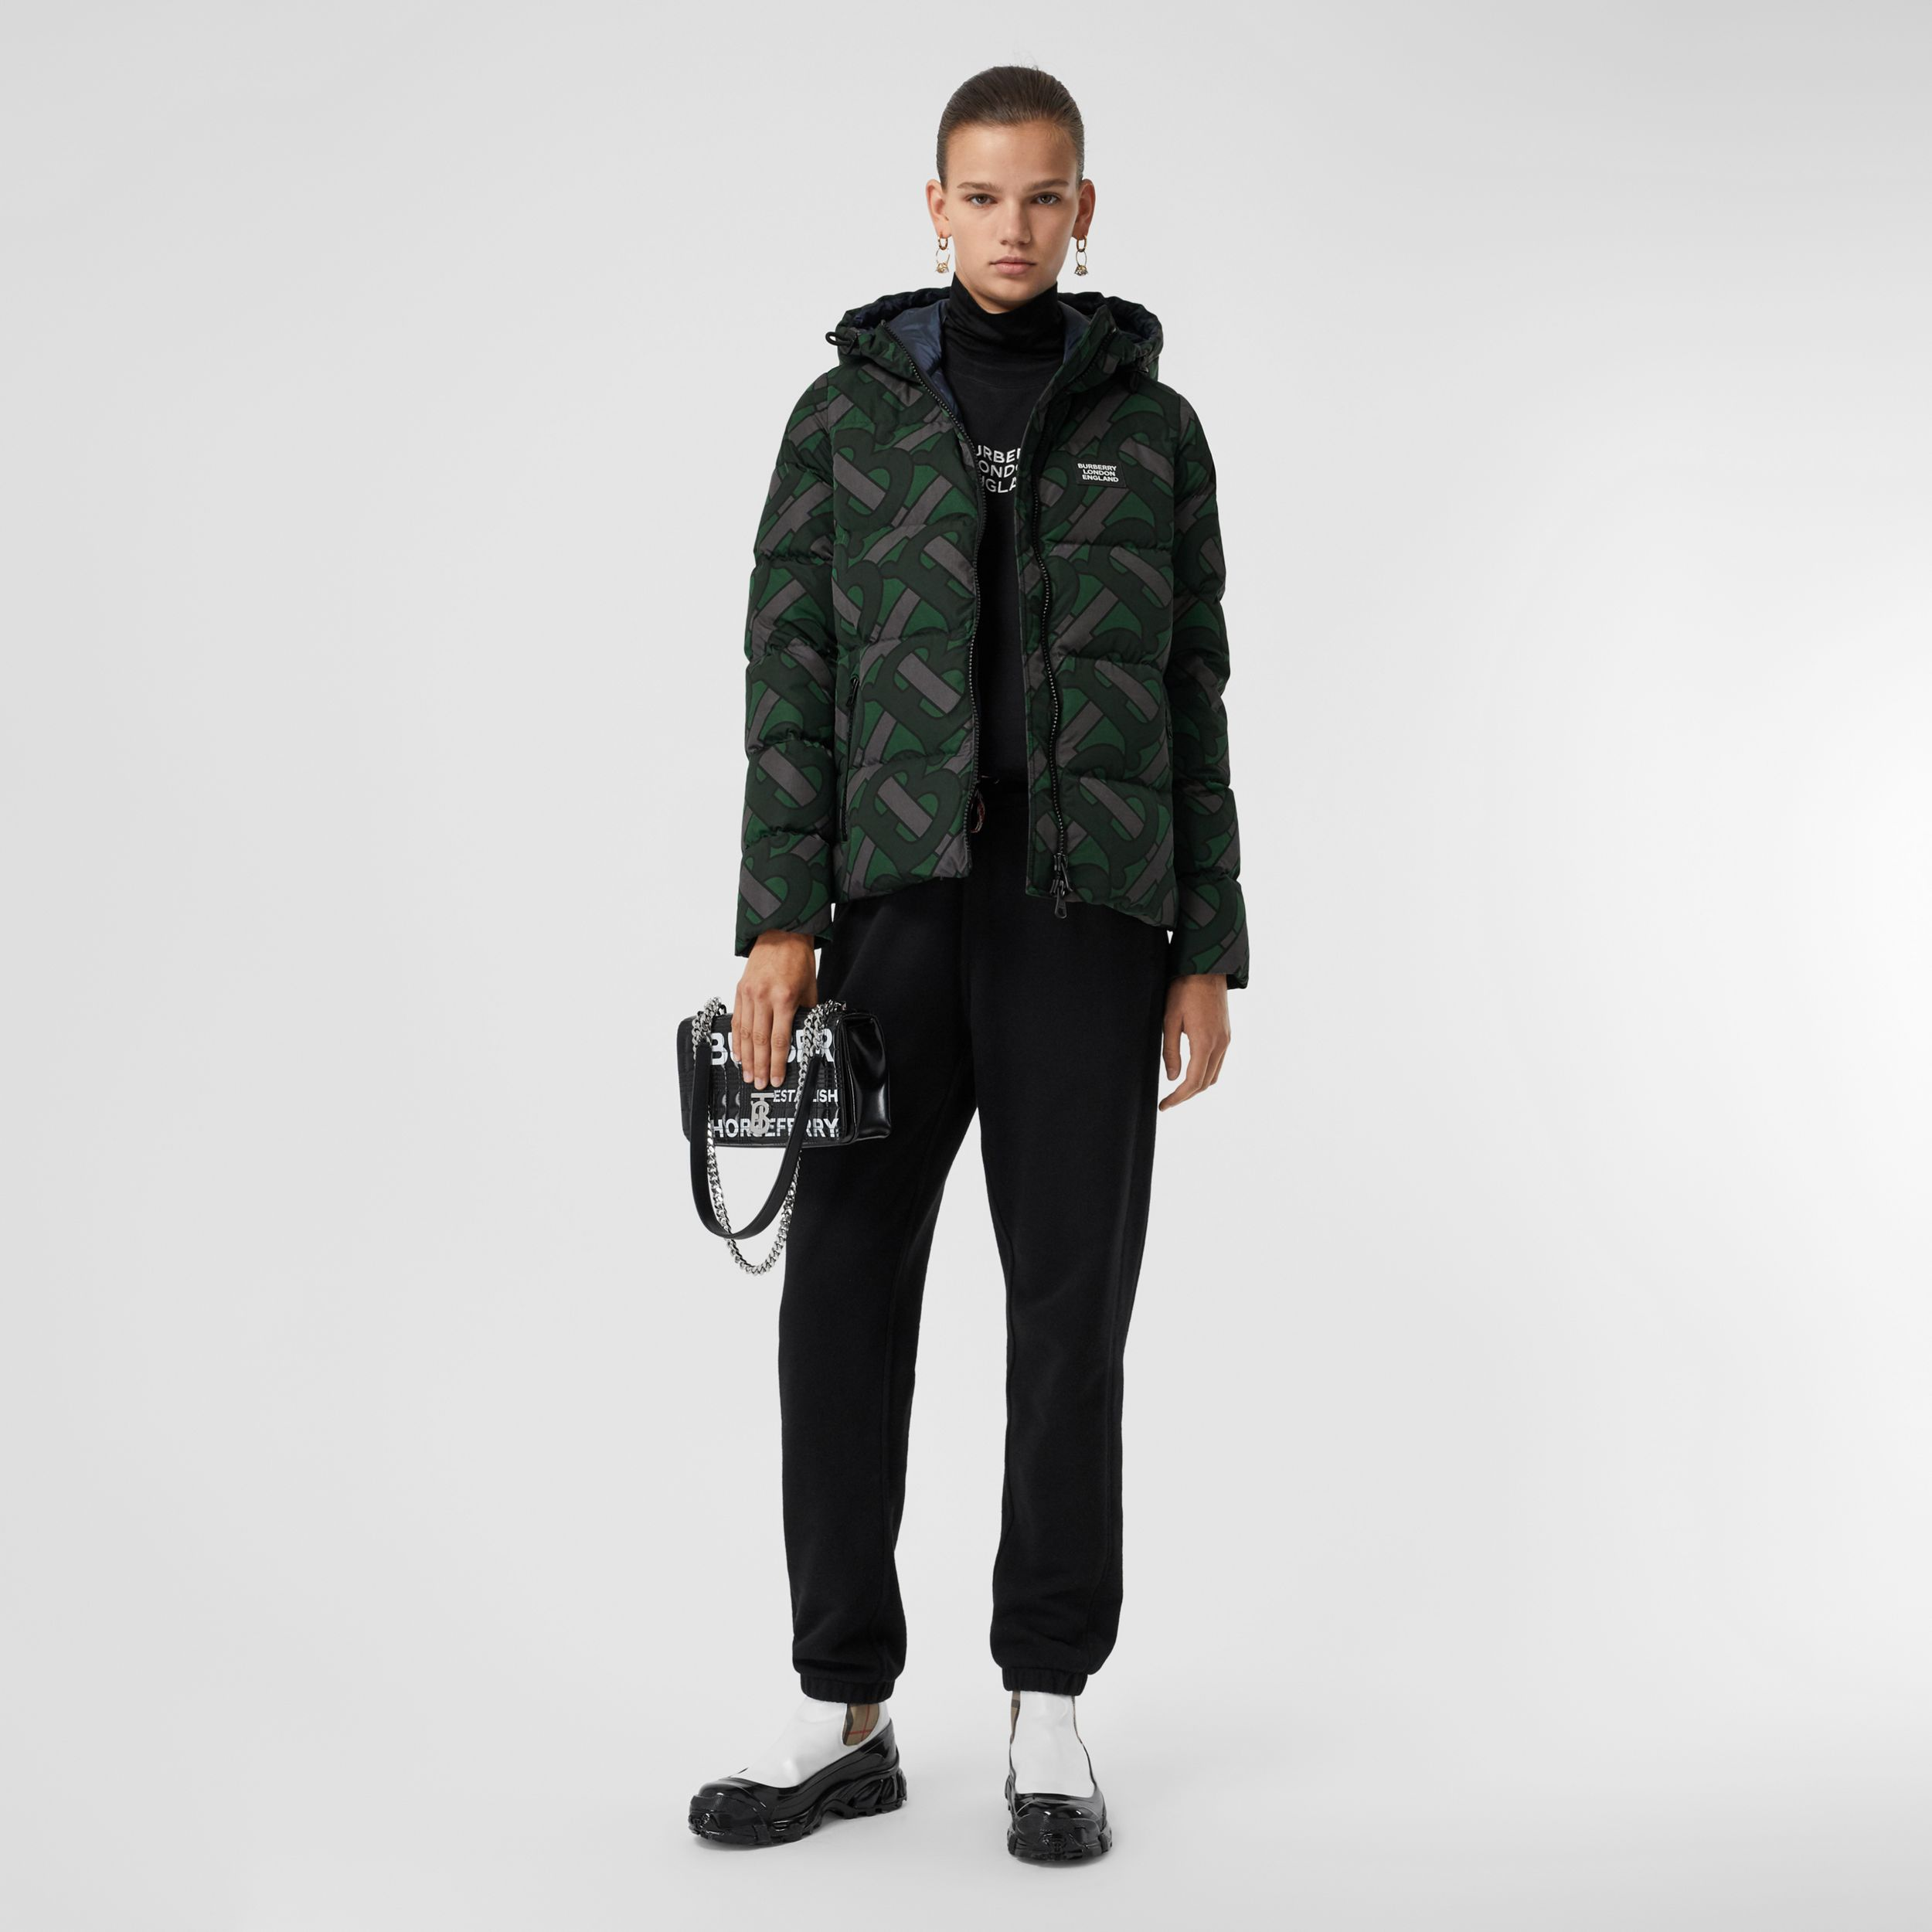 Monogram Print Hooded Puffer Jacket in Forest Green - Women | Burberry United Kingdom - 4